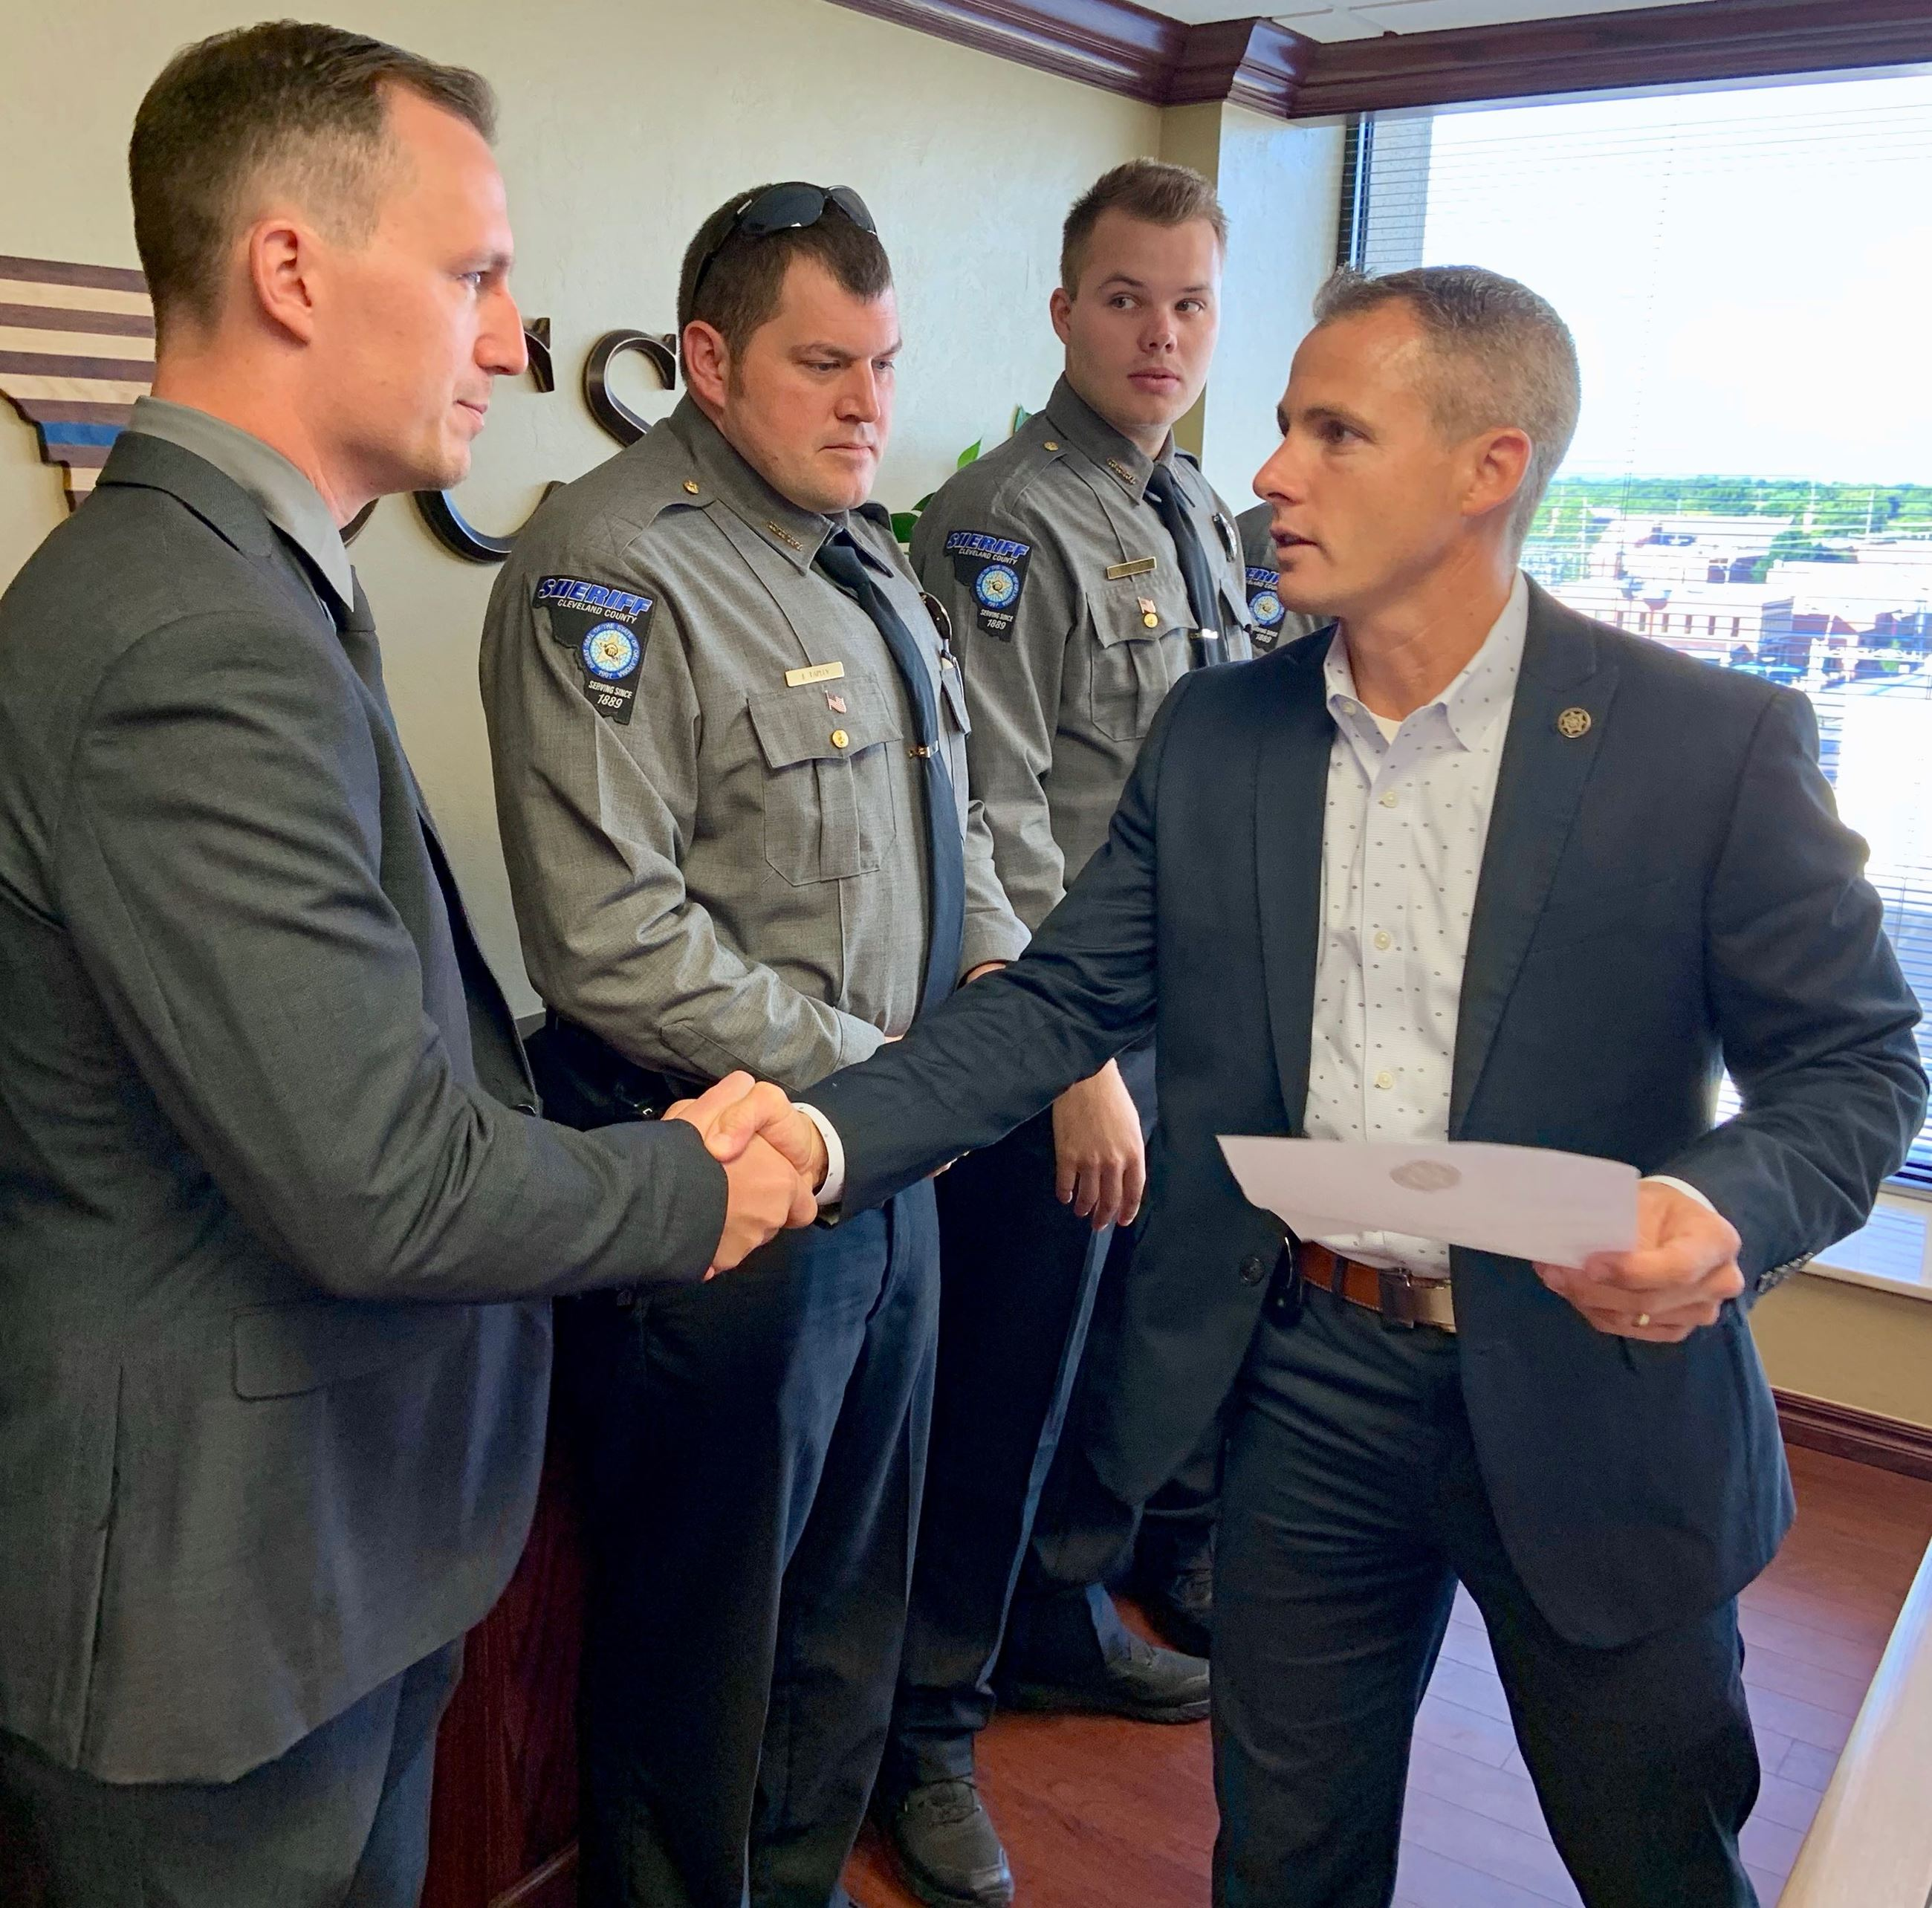 Sheriff Gibson welcomes new team members